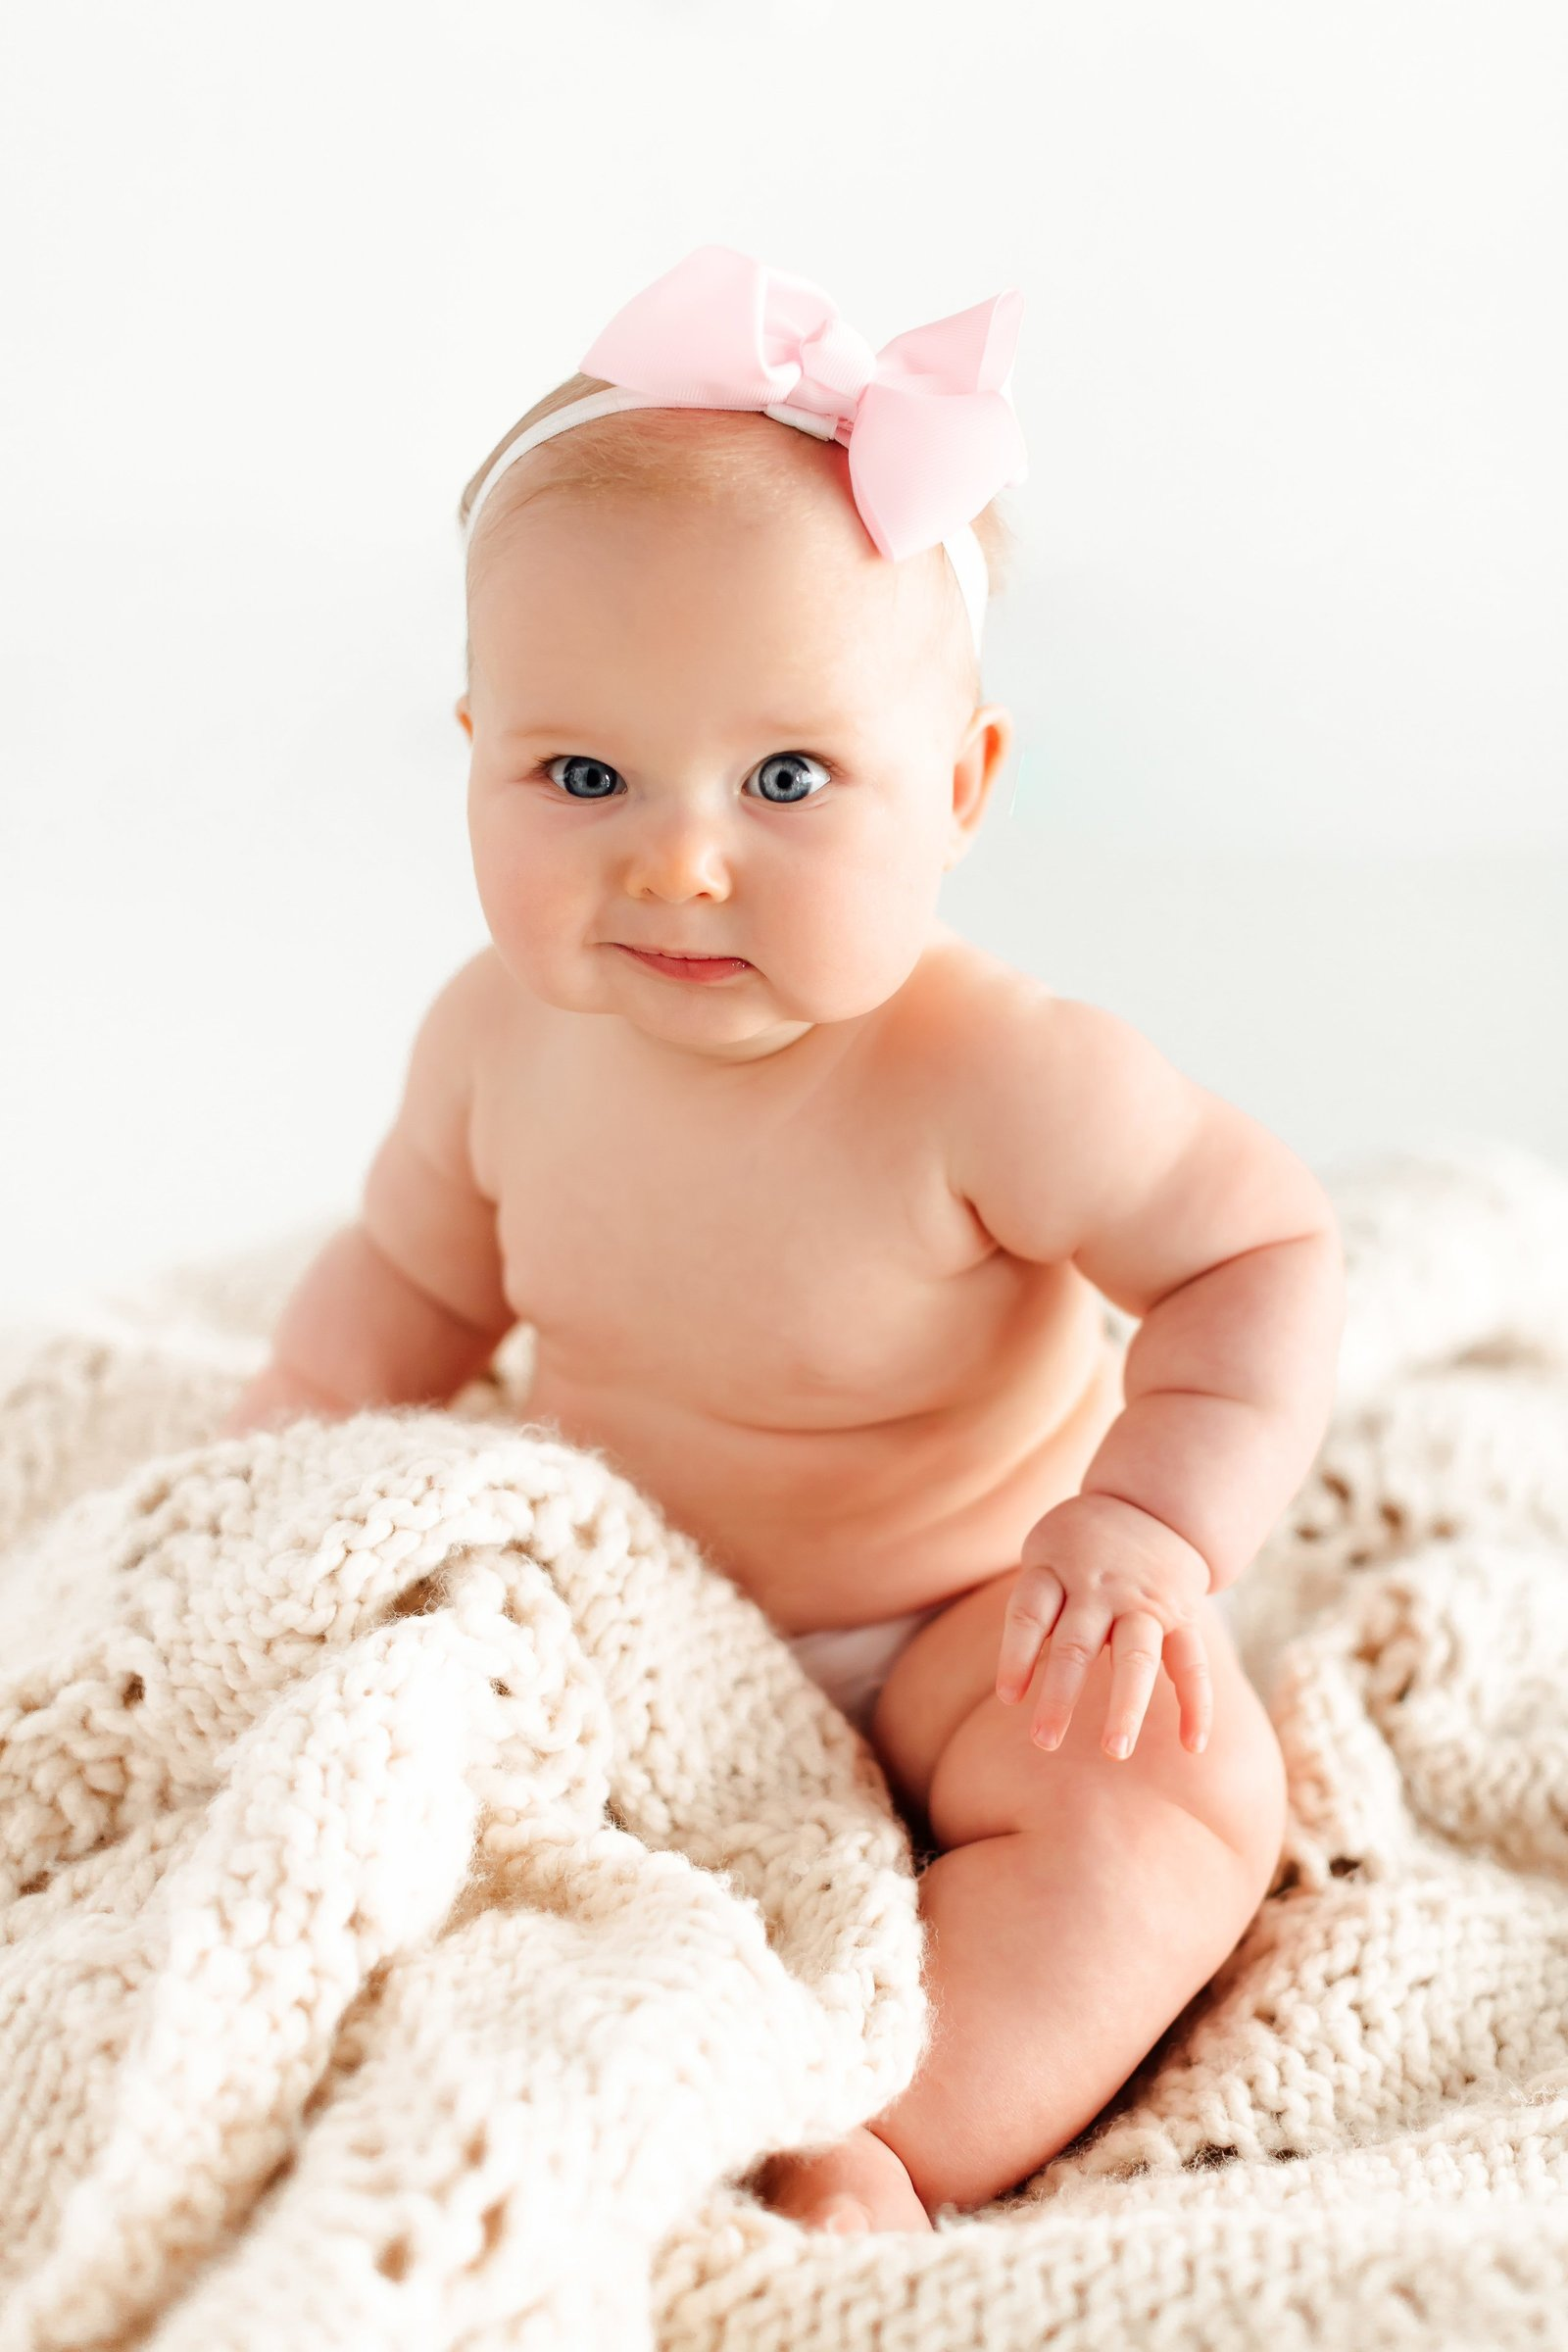 St_Louis_Baby_Photographer_Kelly_Laramore_Photography_33